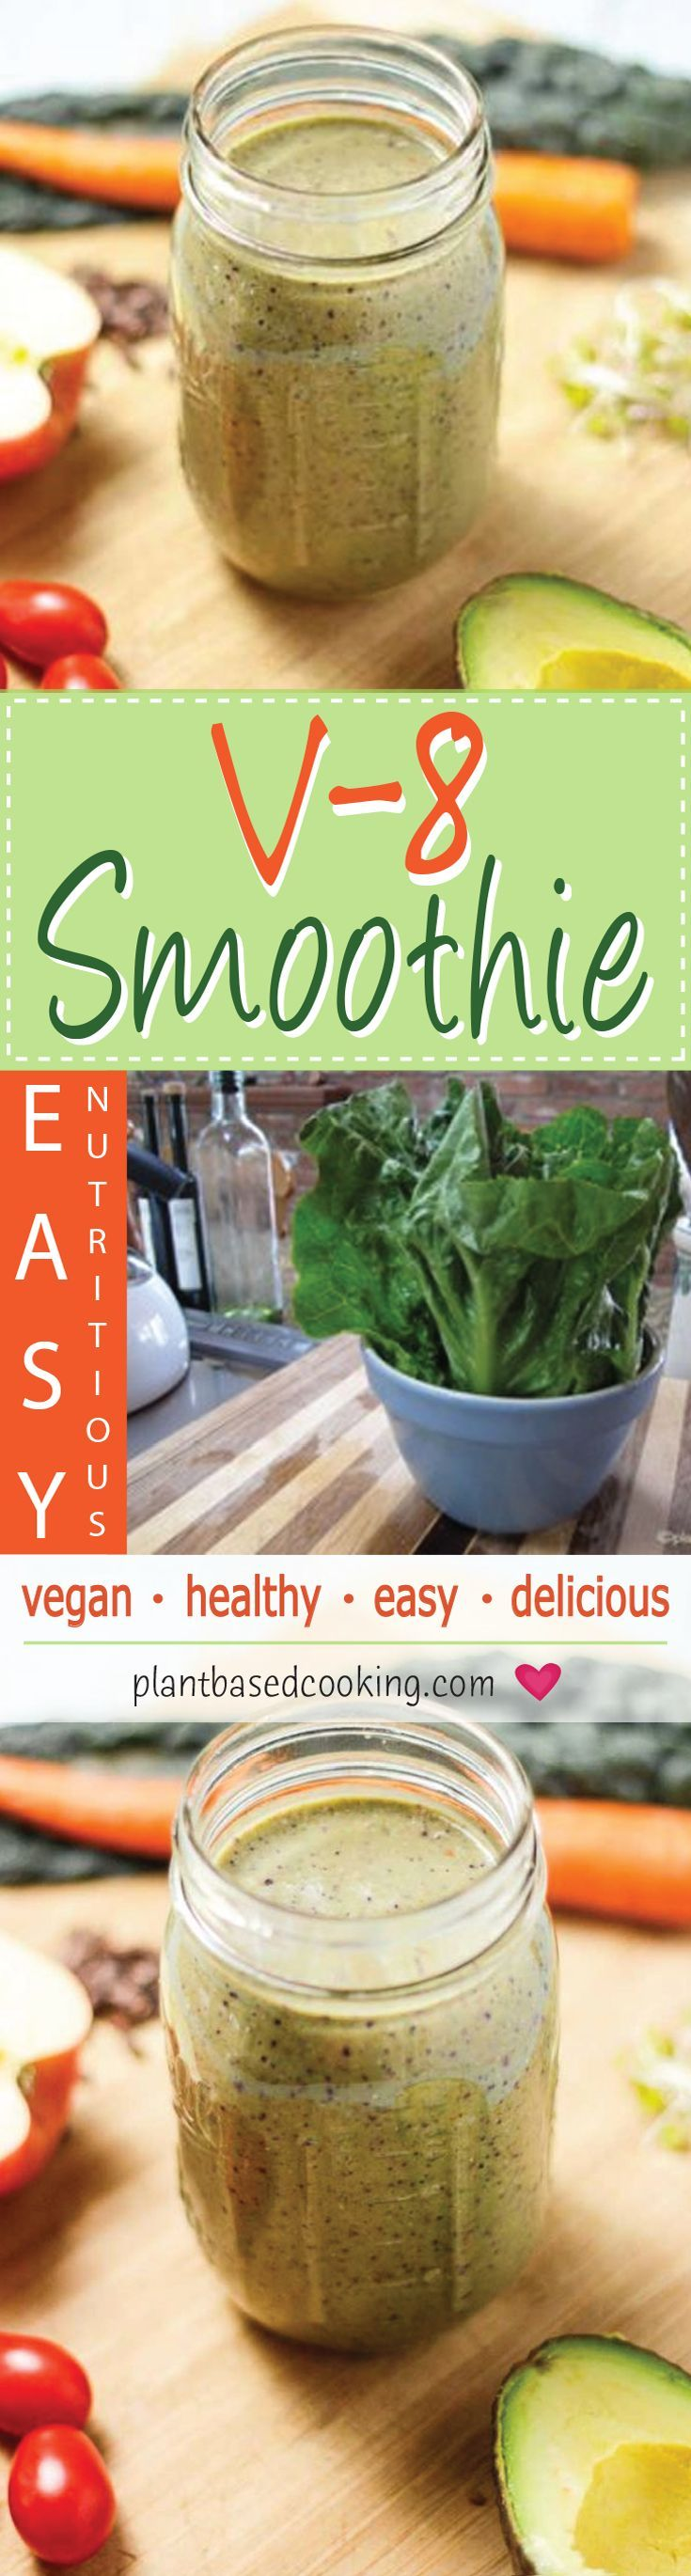 This V-8 smoothie will be your go-to for fresh, hydrating plant power and a wonderful pick-me-up. It's the perfect way to start your day or it makes a great snack. Mix it up and use different leafy greens to make this yummy treat more versatile.